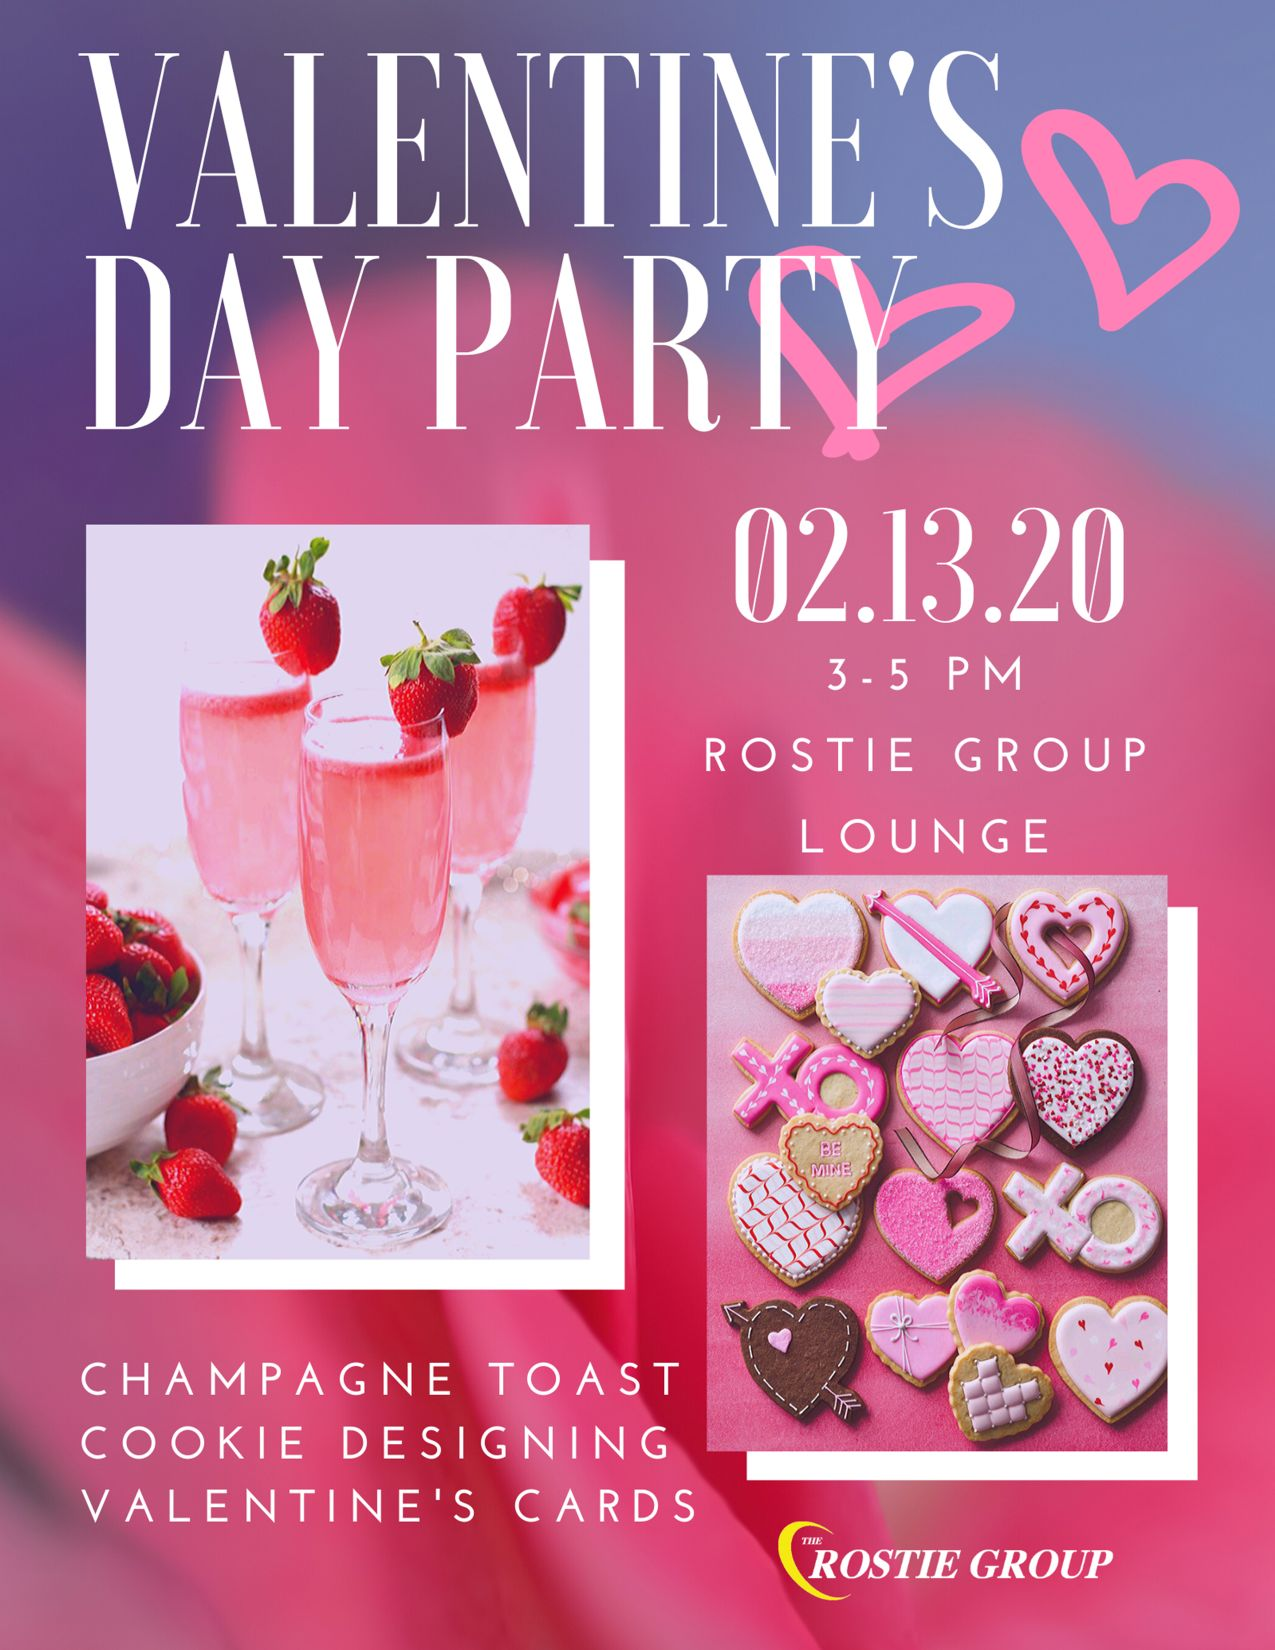 Rostie Group Valentine's Event